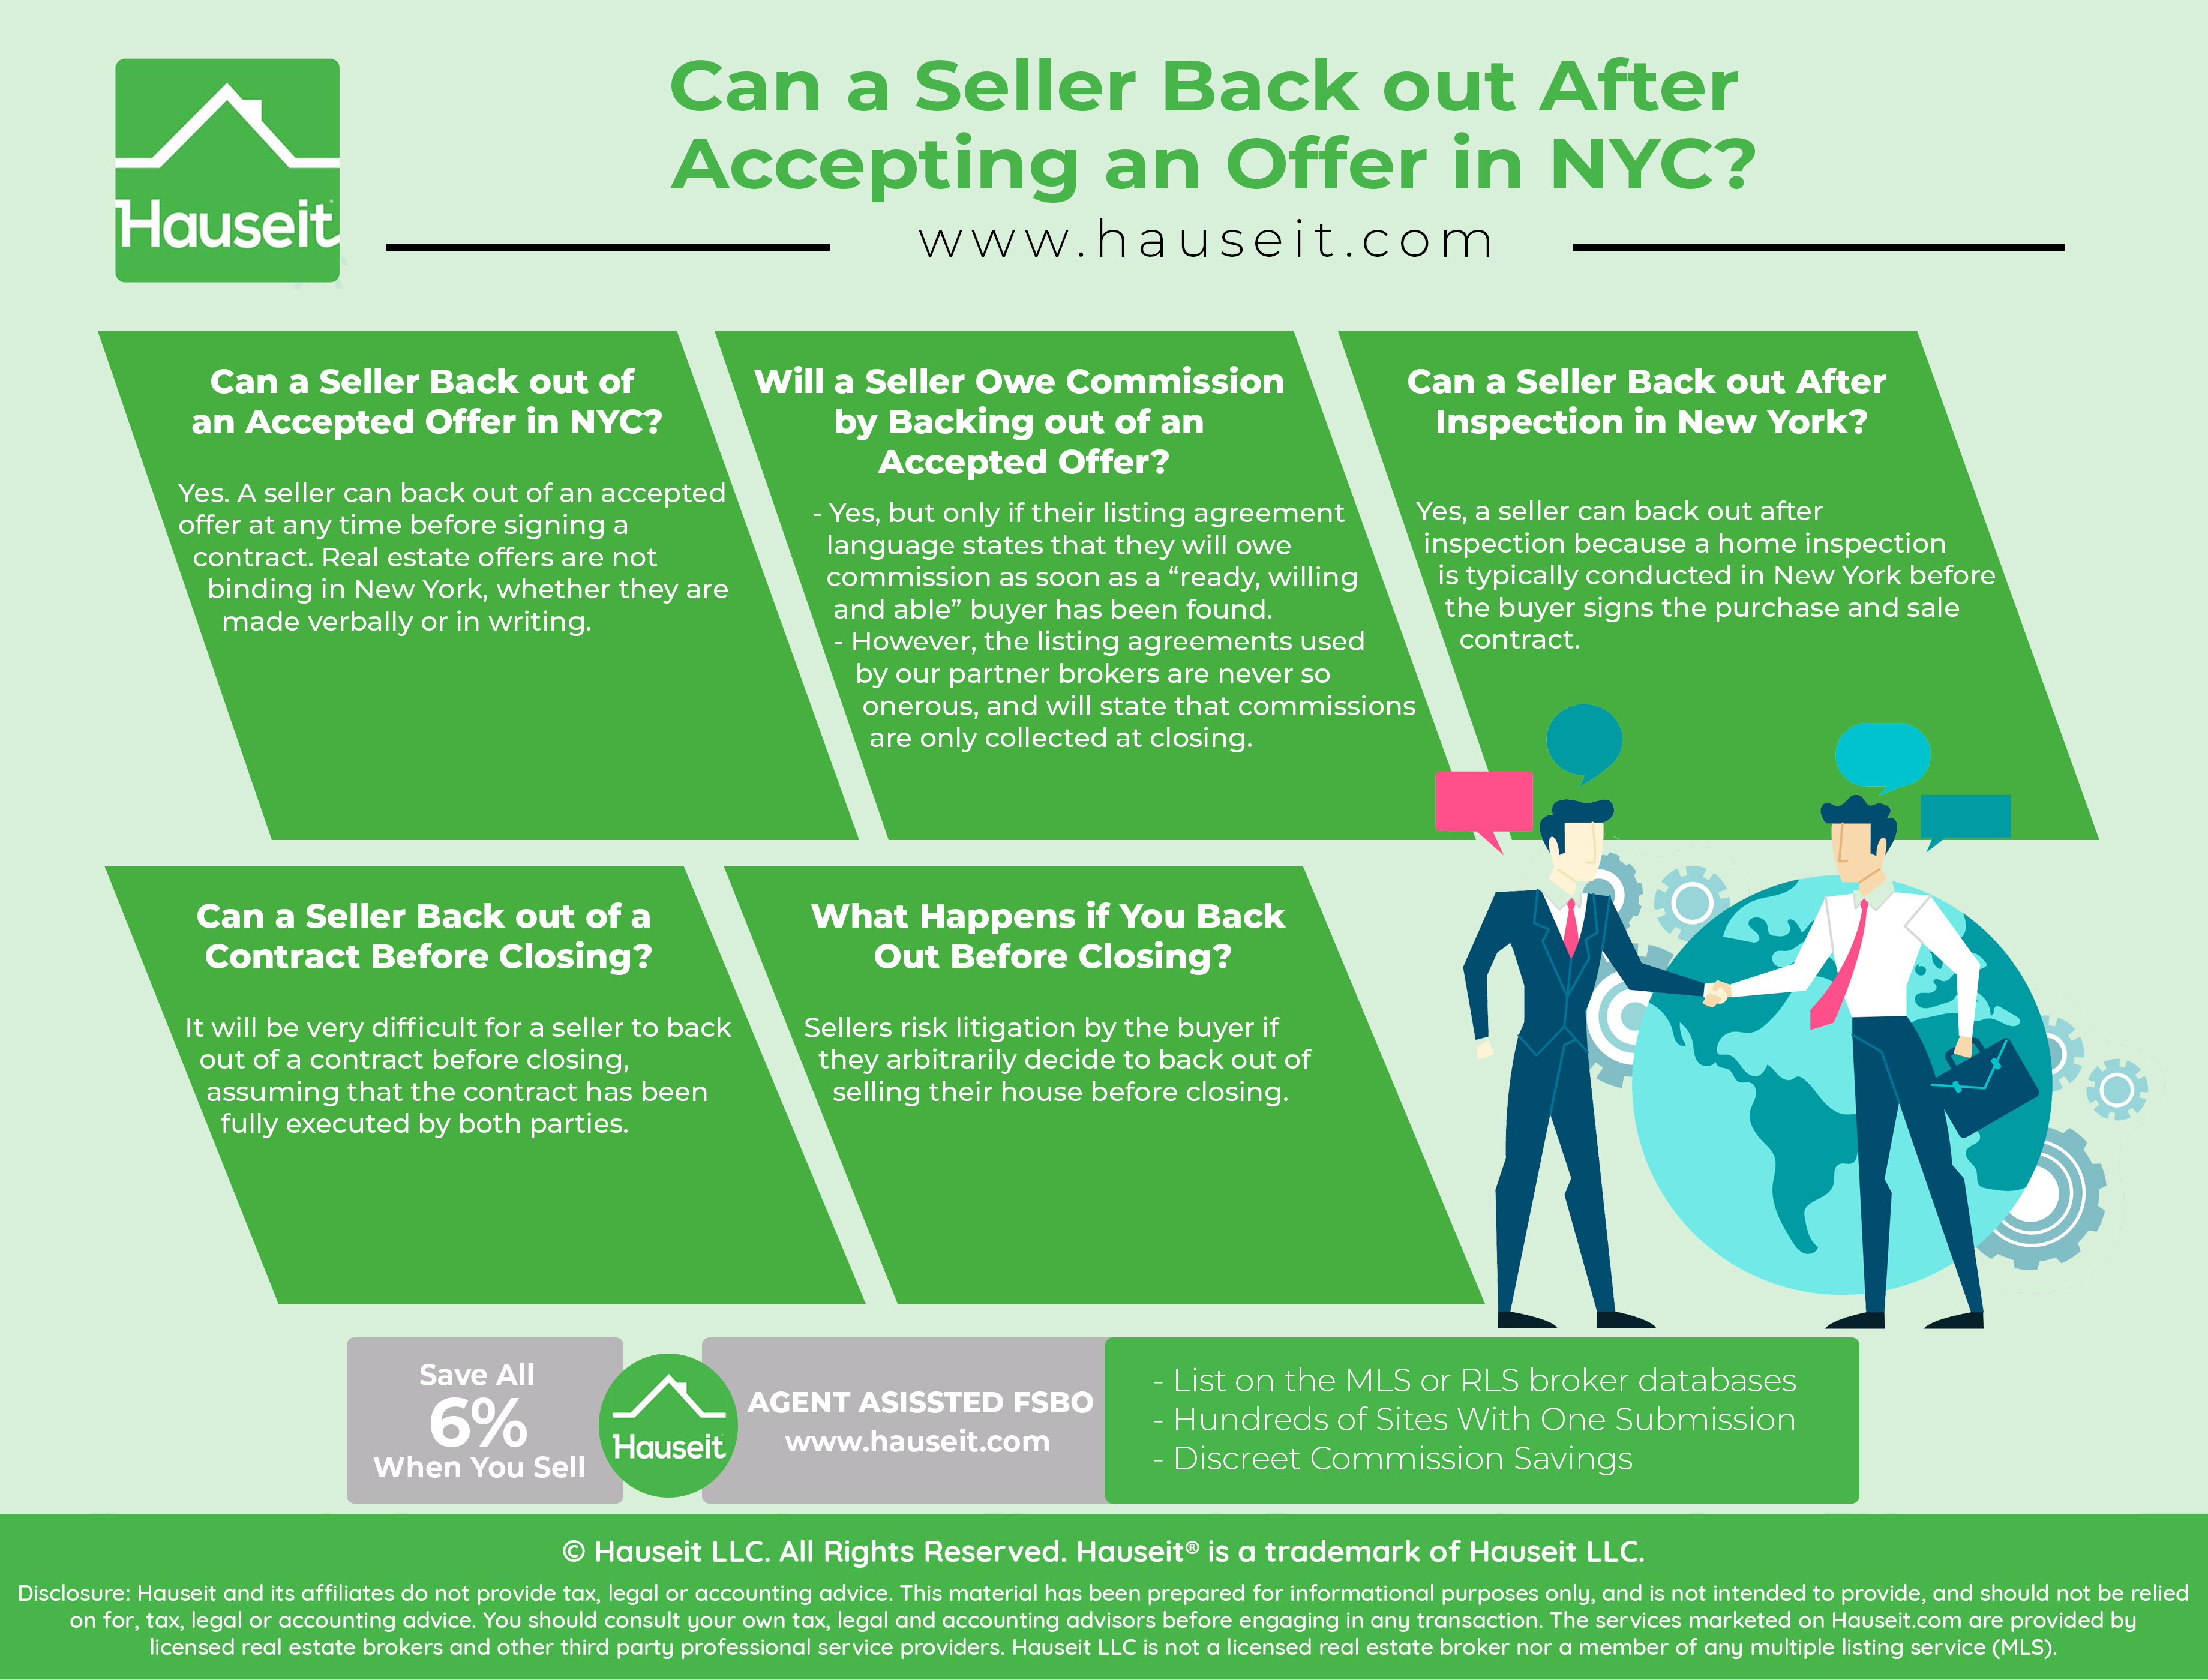 Yes. A seller can back out of an accepted offer at any time before signing a contract. Real estate offers are not binding in New York, whether they are made verbally or in writing.